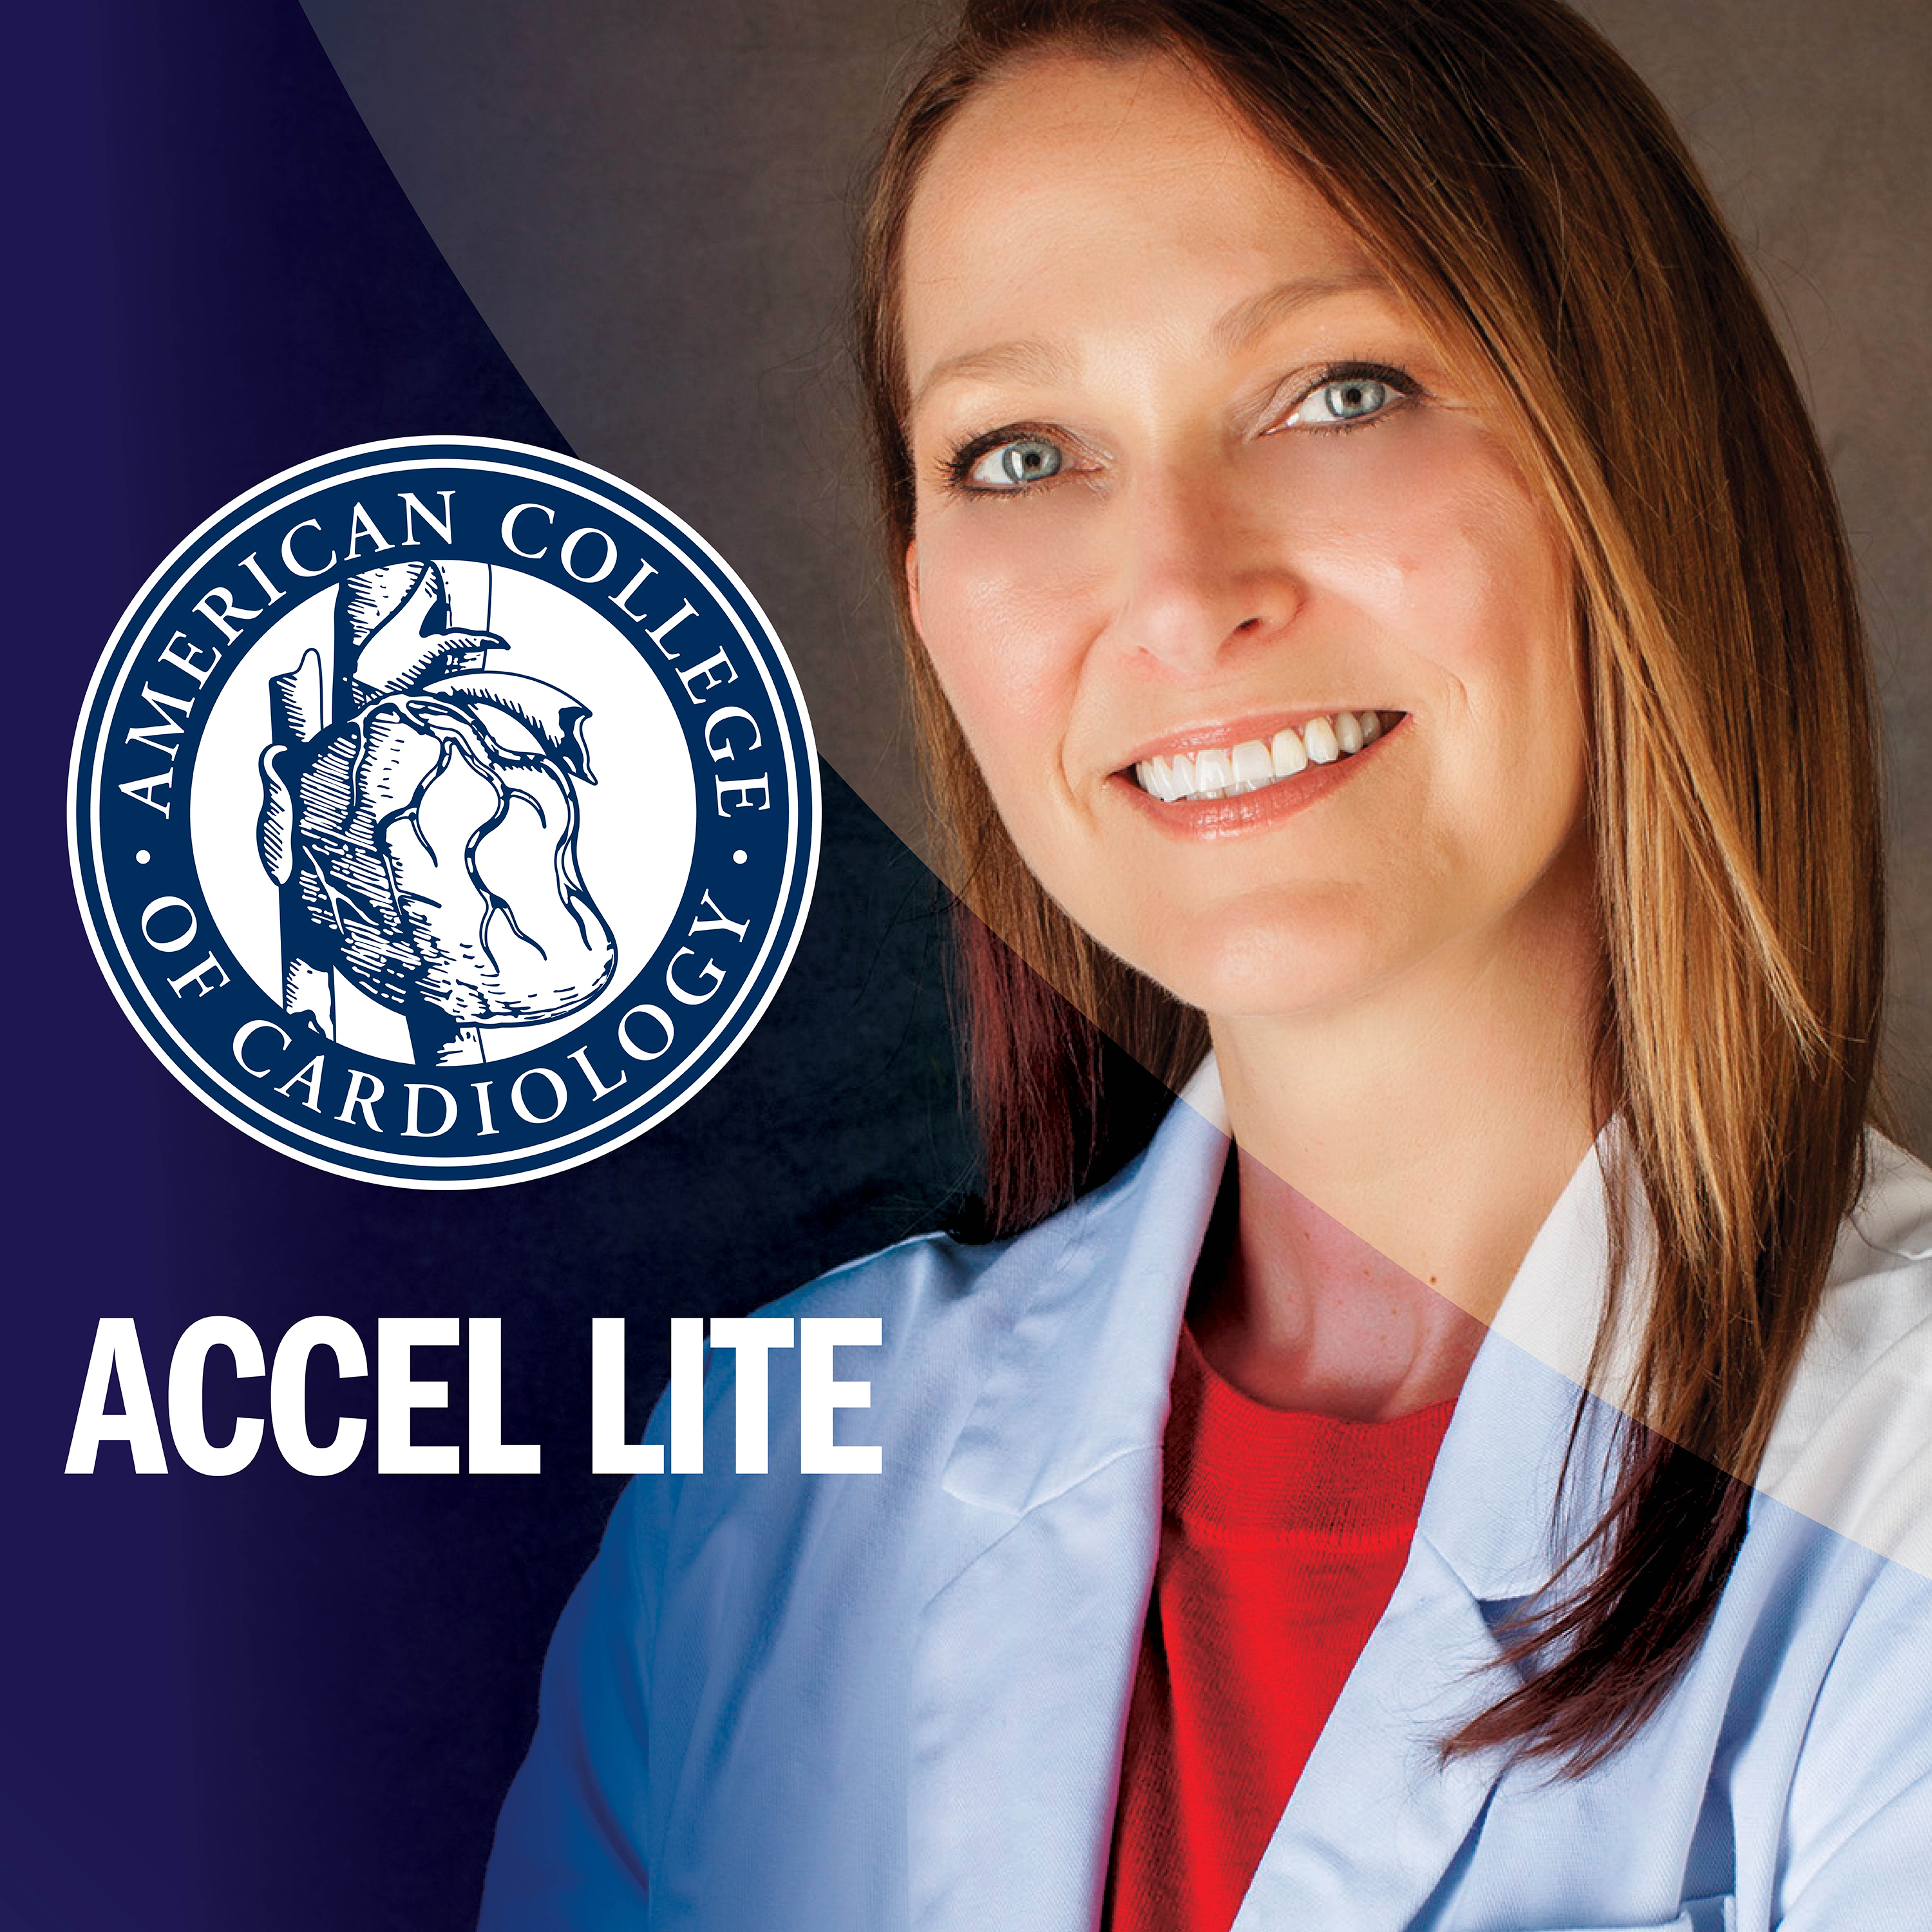 ACCEL Lite: Featured ACCEL Interviews on Exciting CV Research show art